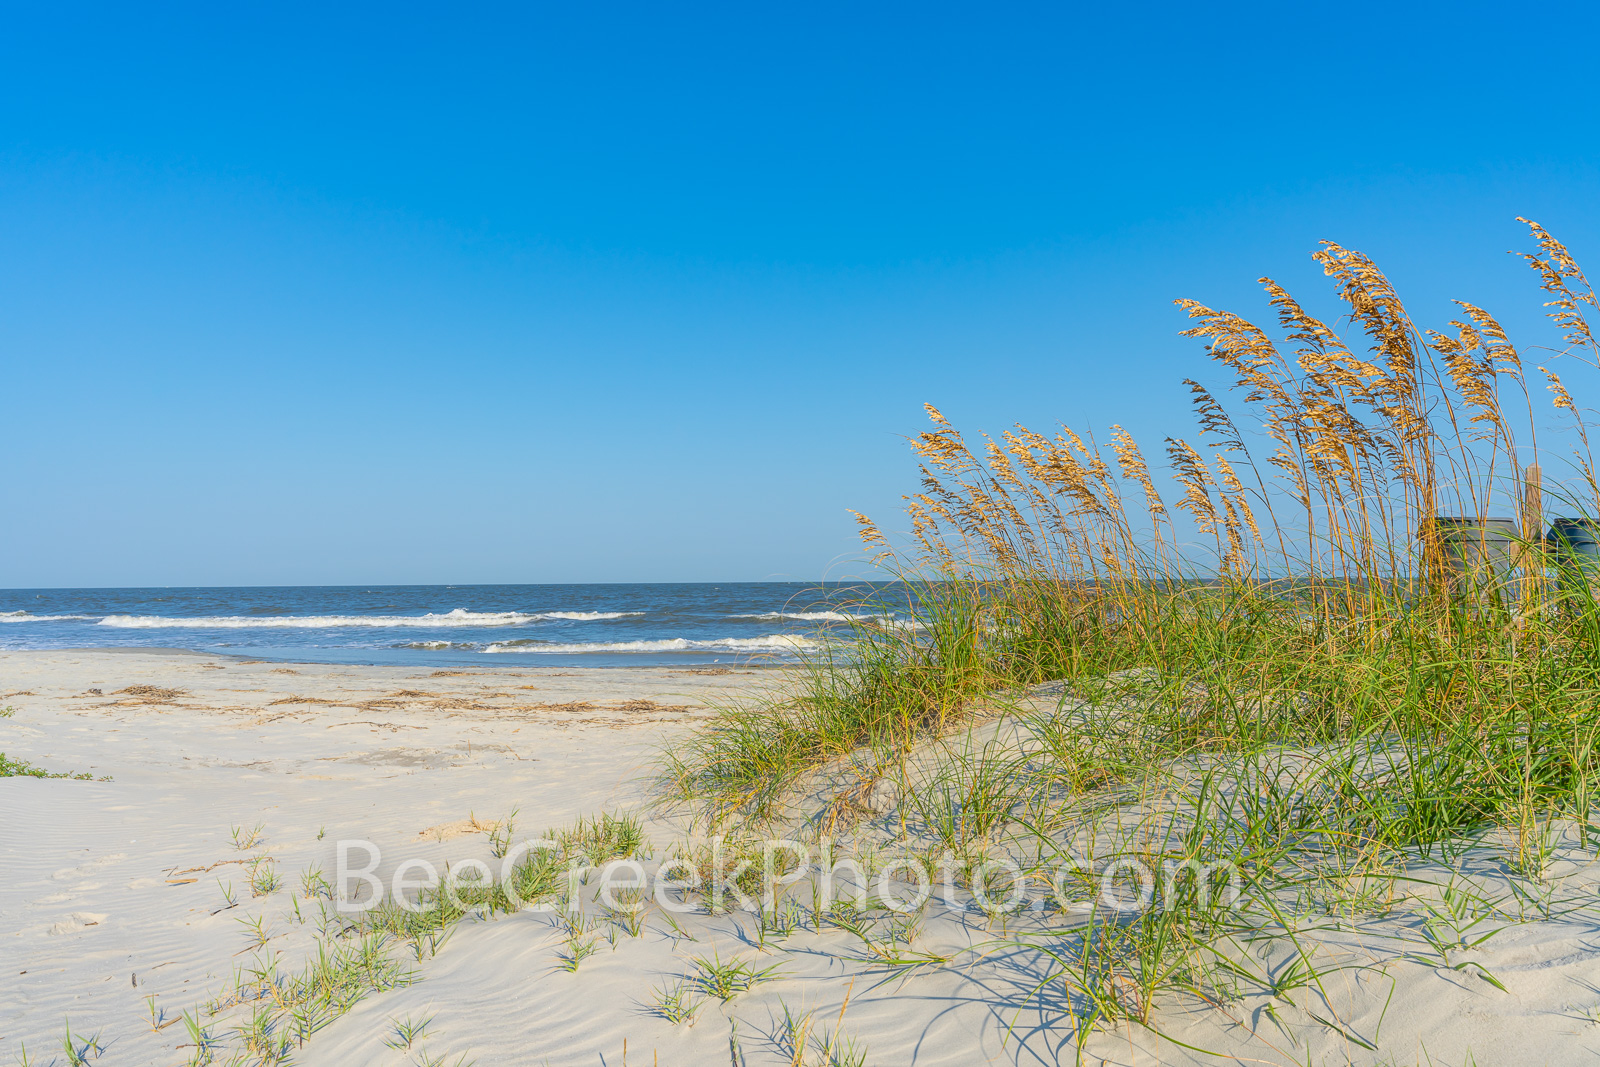 Sea Oats on the Dune - This serene scene of the dunes with the sea oat growing along the beach at Jekyll Island beach with these...